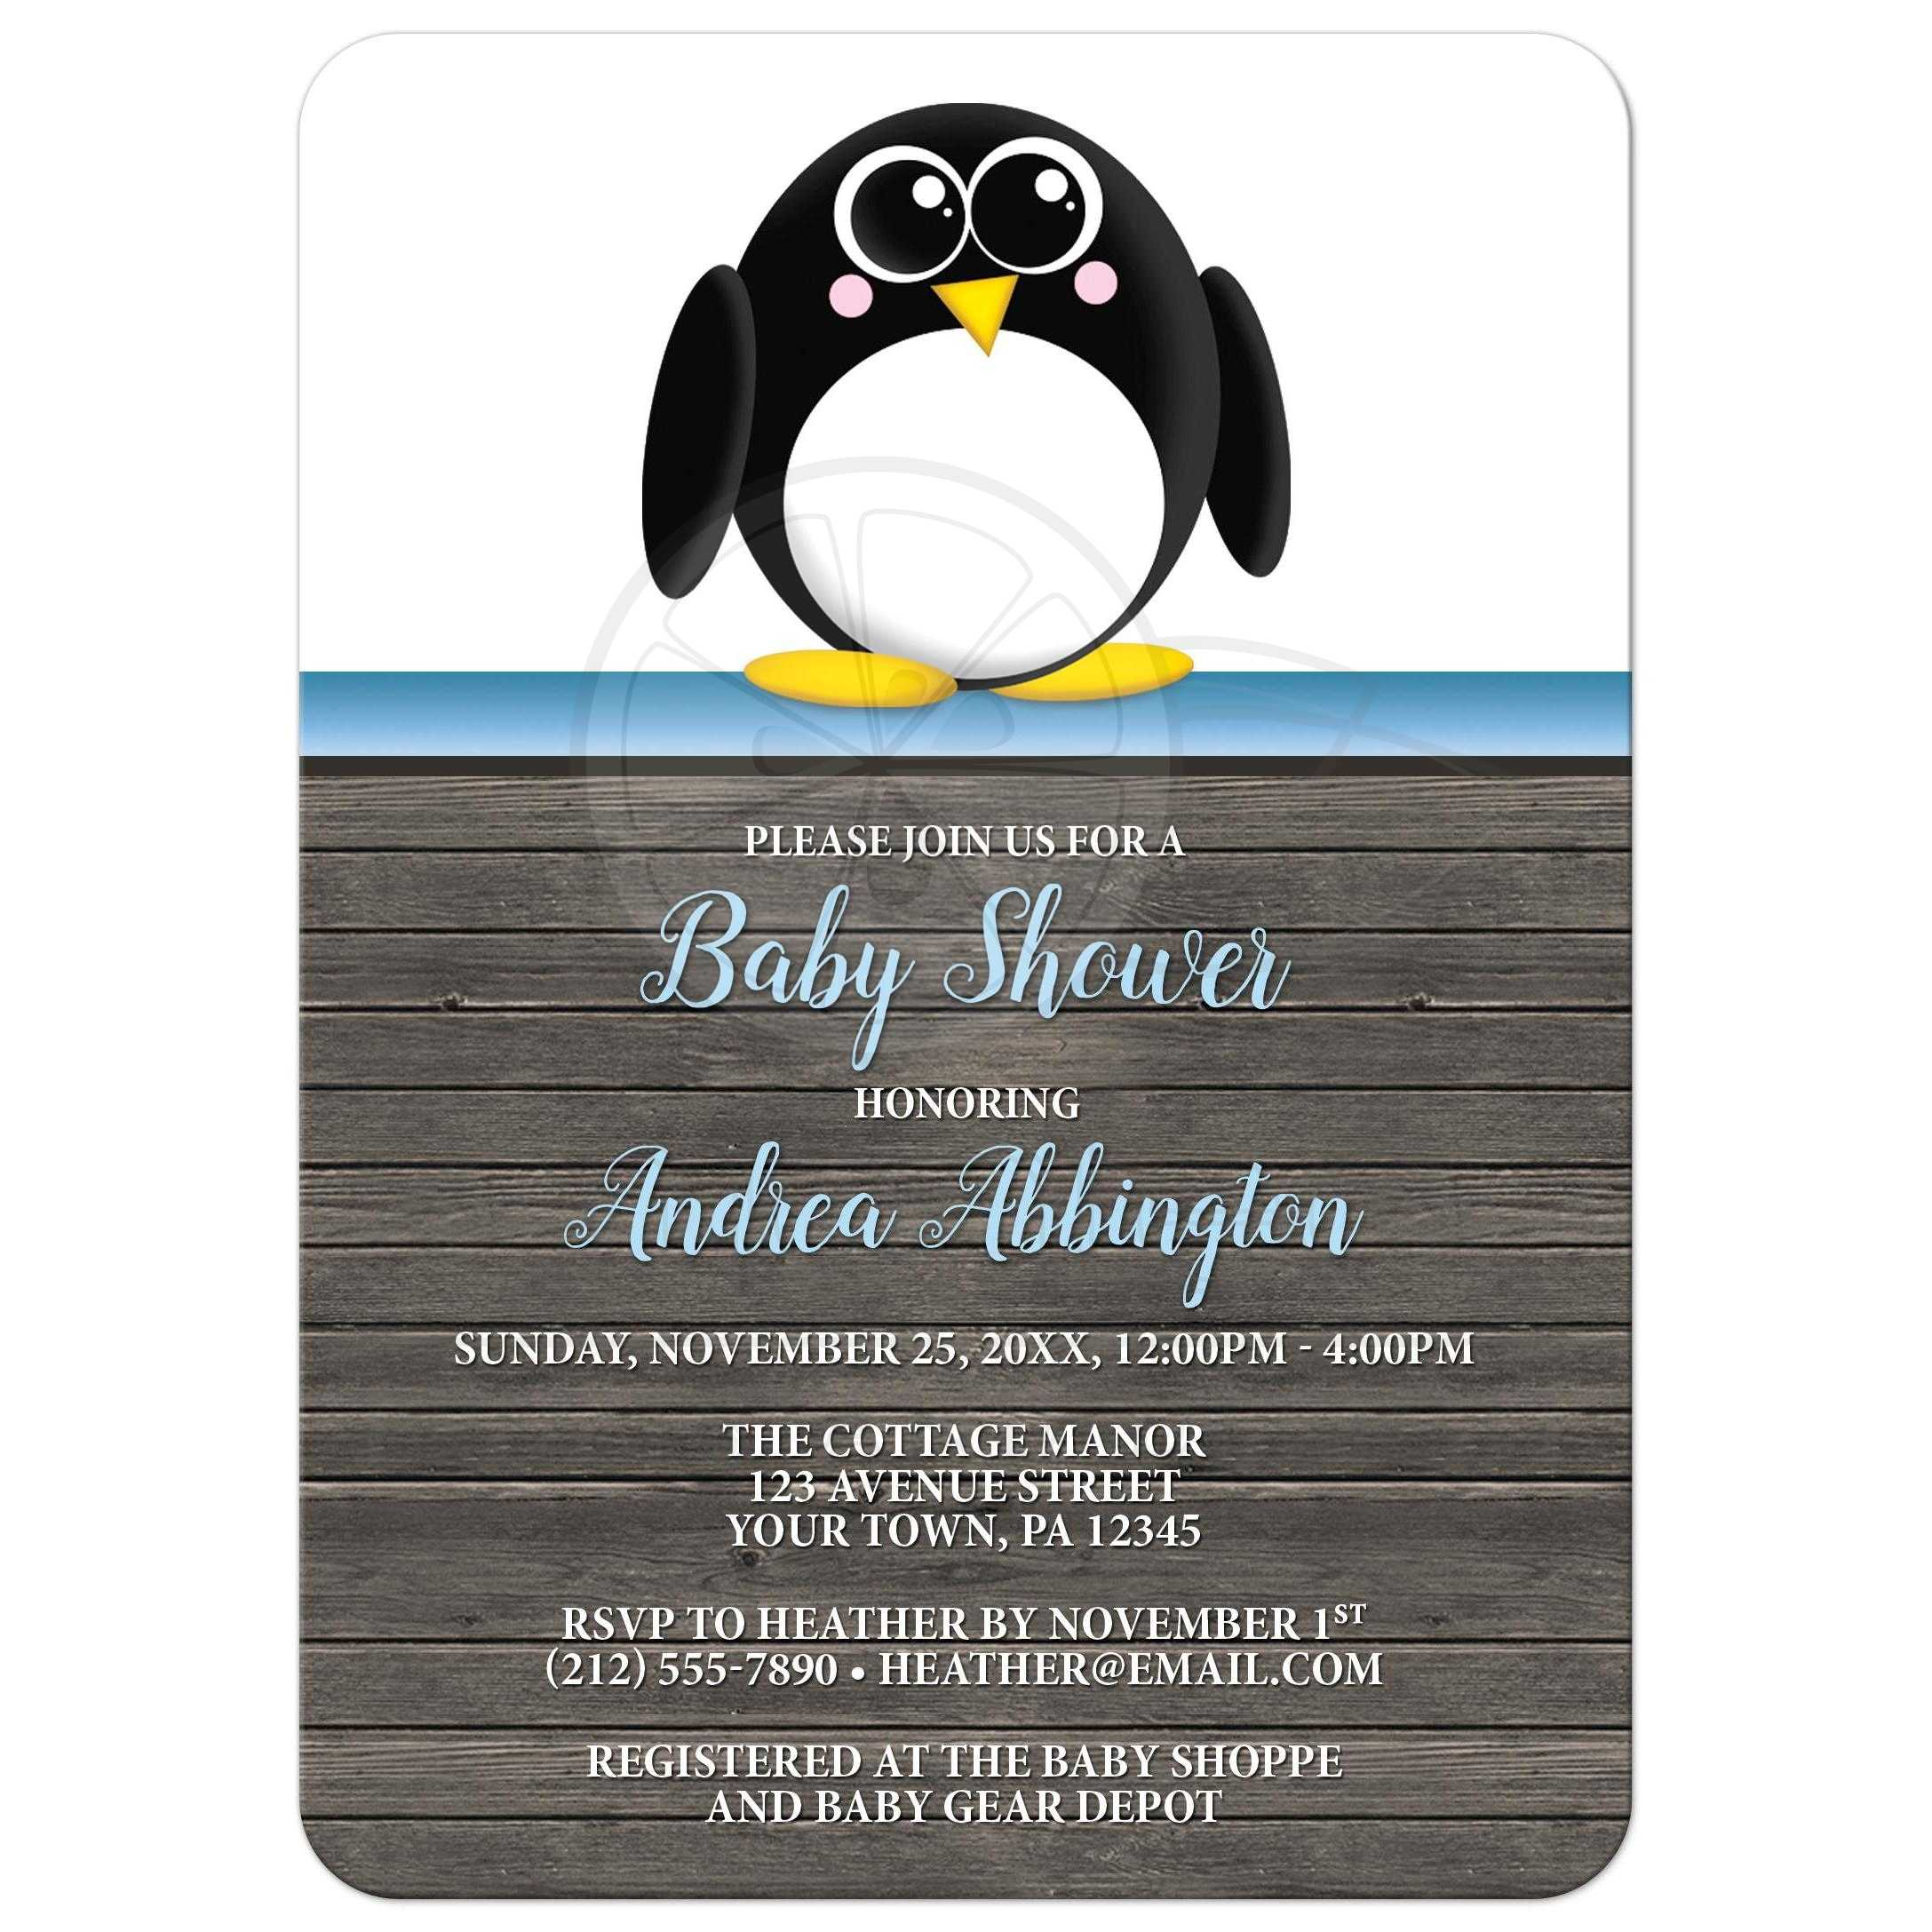 Baby Shower Invitations   Cute Penguin Blue Rustic Brown Wood